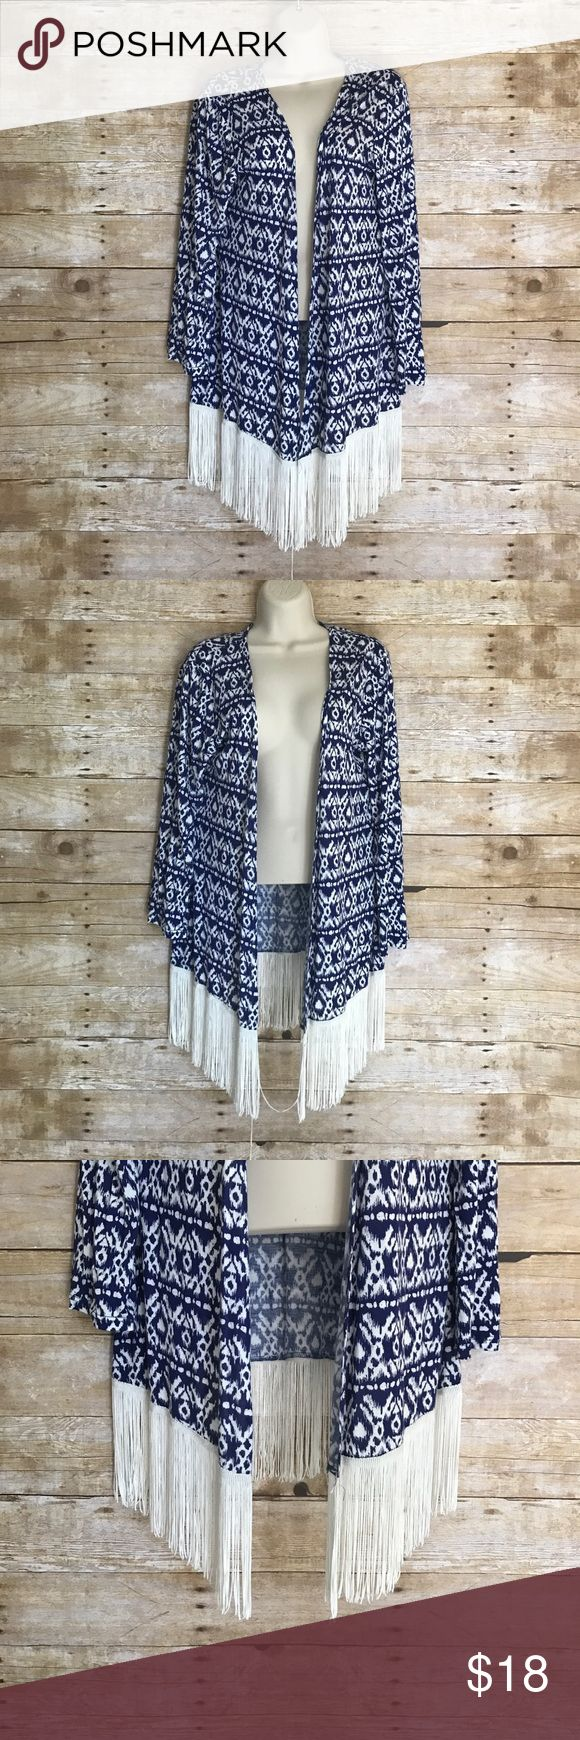 """""""Design Works"""" Brand Kimono cardigan tribal Boho S Beautiful Design Works Brand Boho style kimono cardigan - Size Small - blue & white tribal print with white silky fringes at bottom - long sleeve relaxed cover up - excellent condition - ‼️FAST SHIPPING‼️ Design Works  Sweaters Cardigans"""